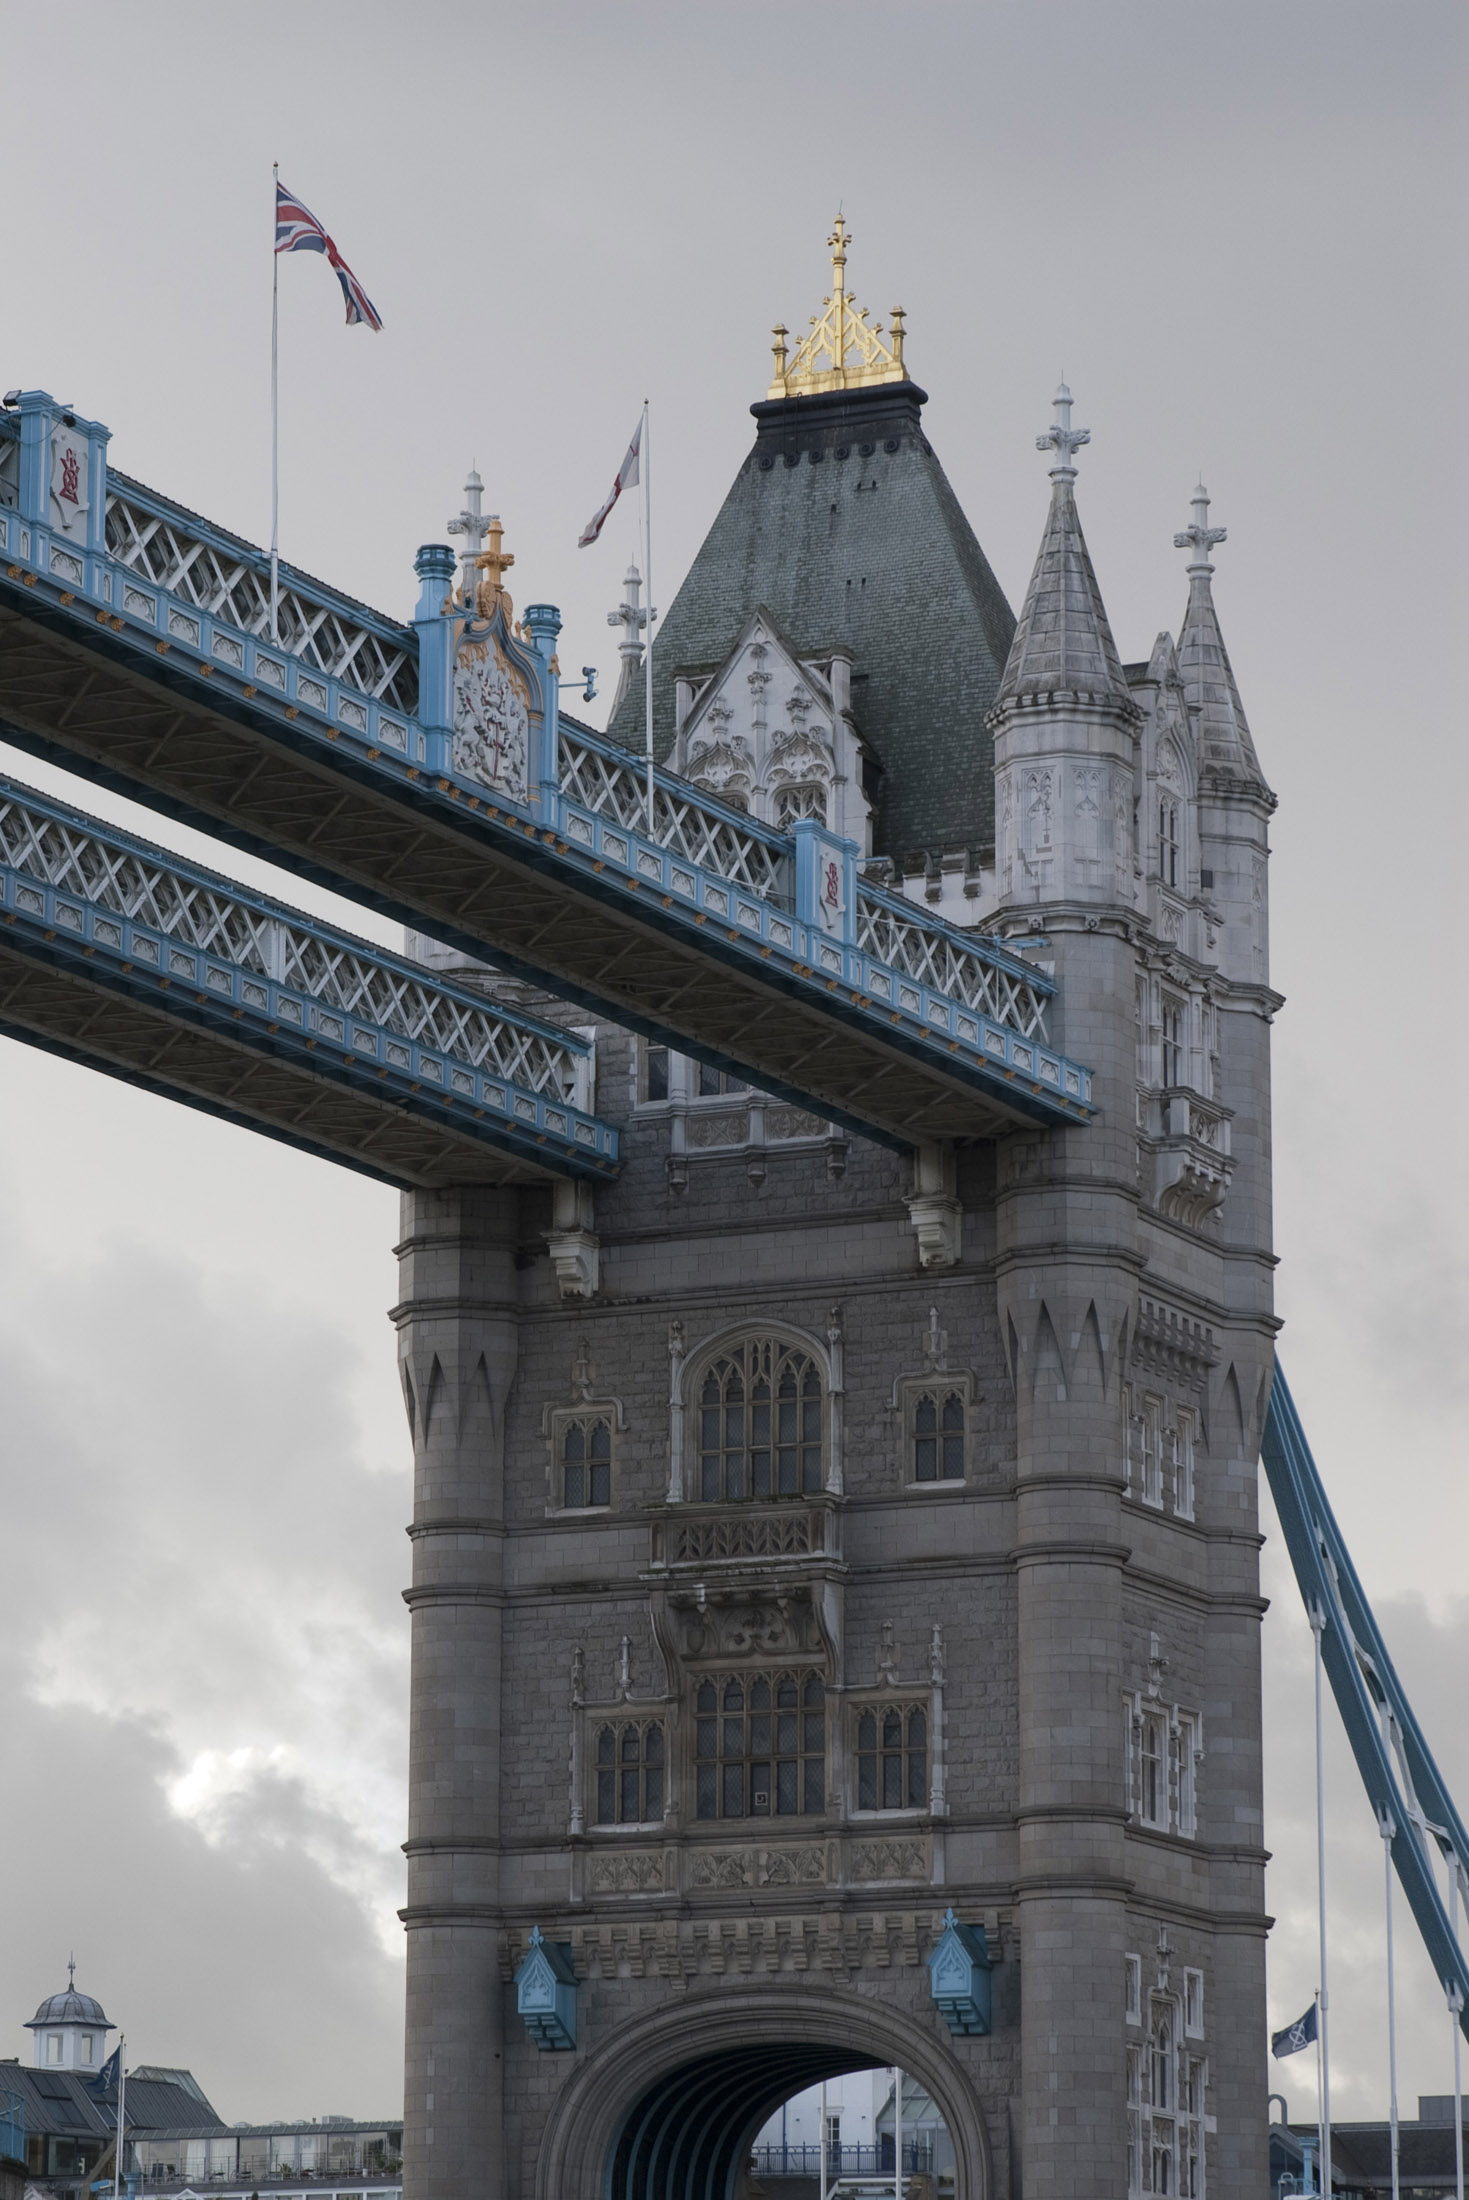 Berlin Gothic Free Stock Photo Of Tower Bridge Details | Photoeverywhere